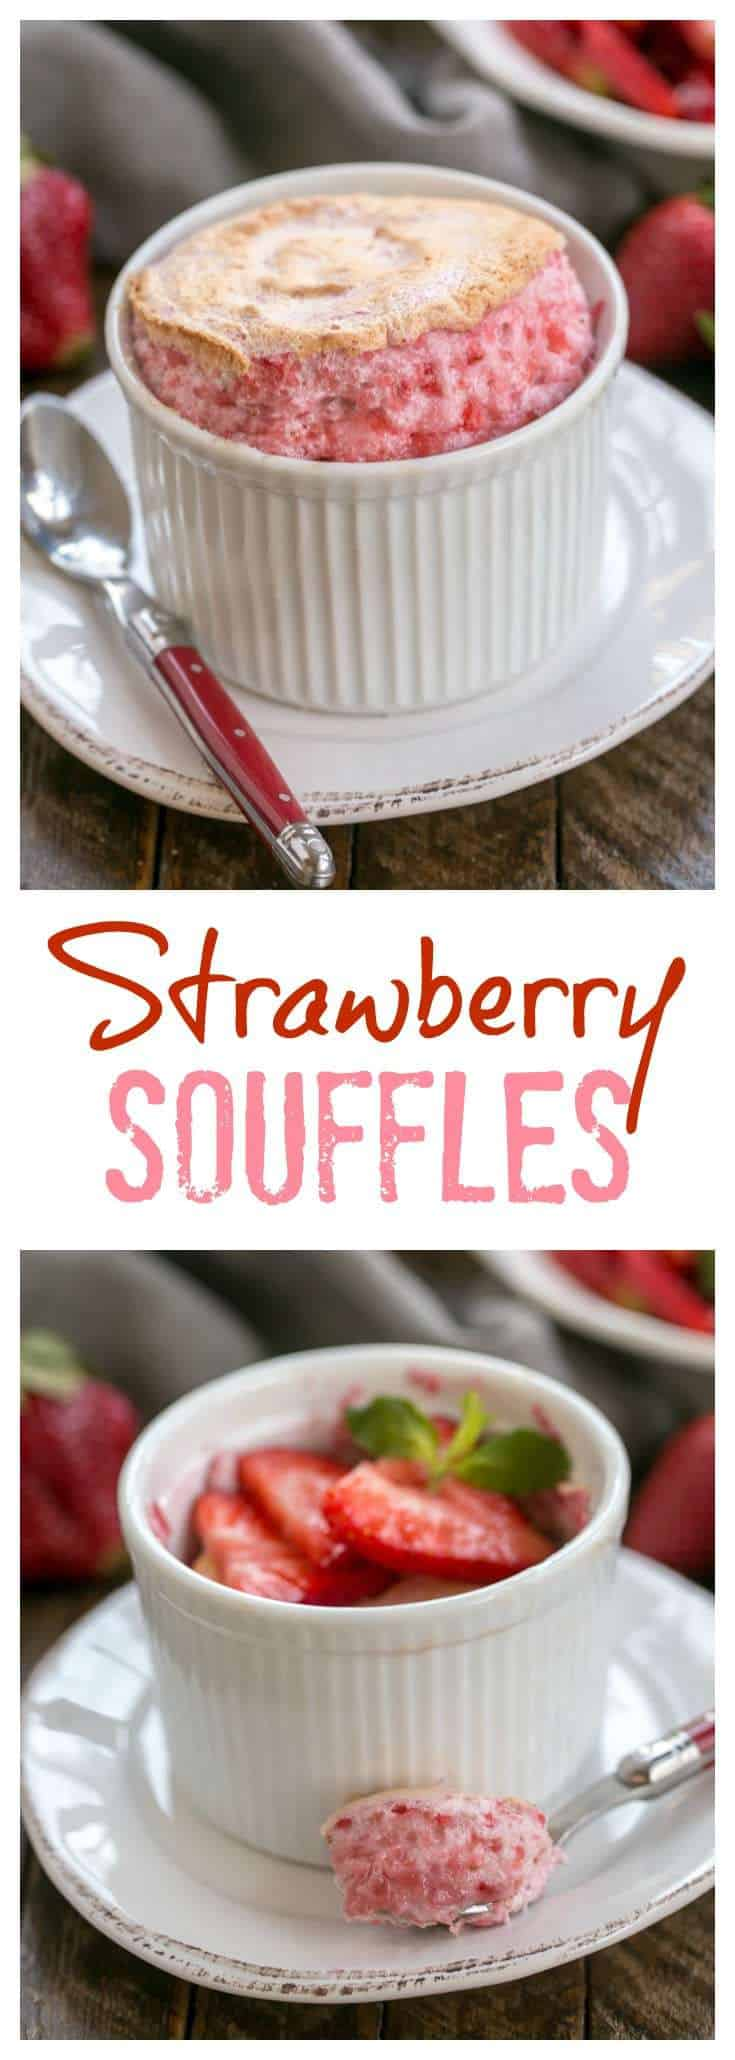 Strawberry Soufflés with Fresh Strawberries are an elegant dessert that are the perfect treat when strawberries are in season! #souffle #strawberries #dessert